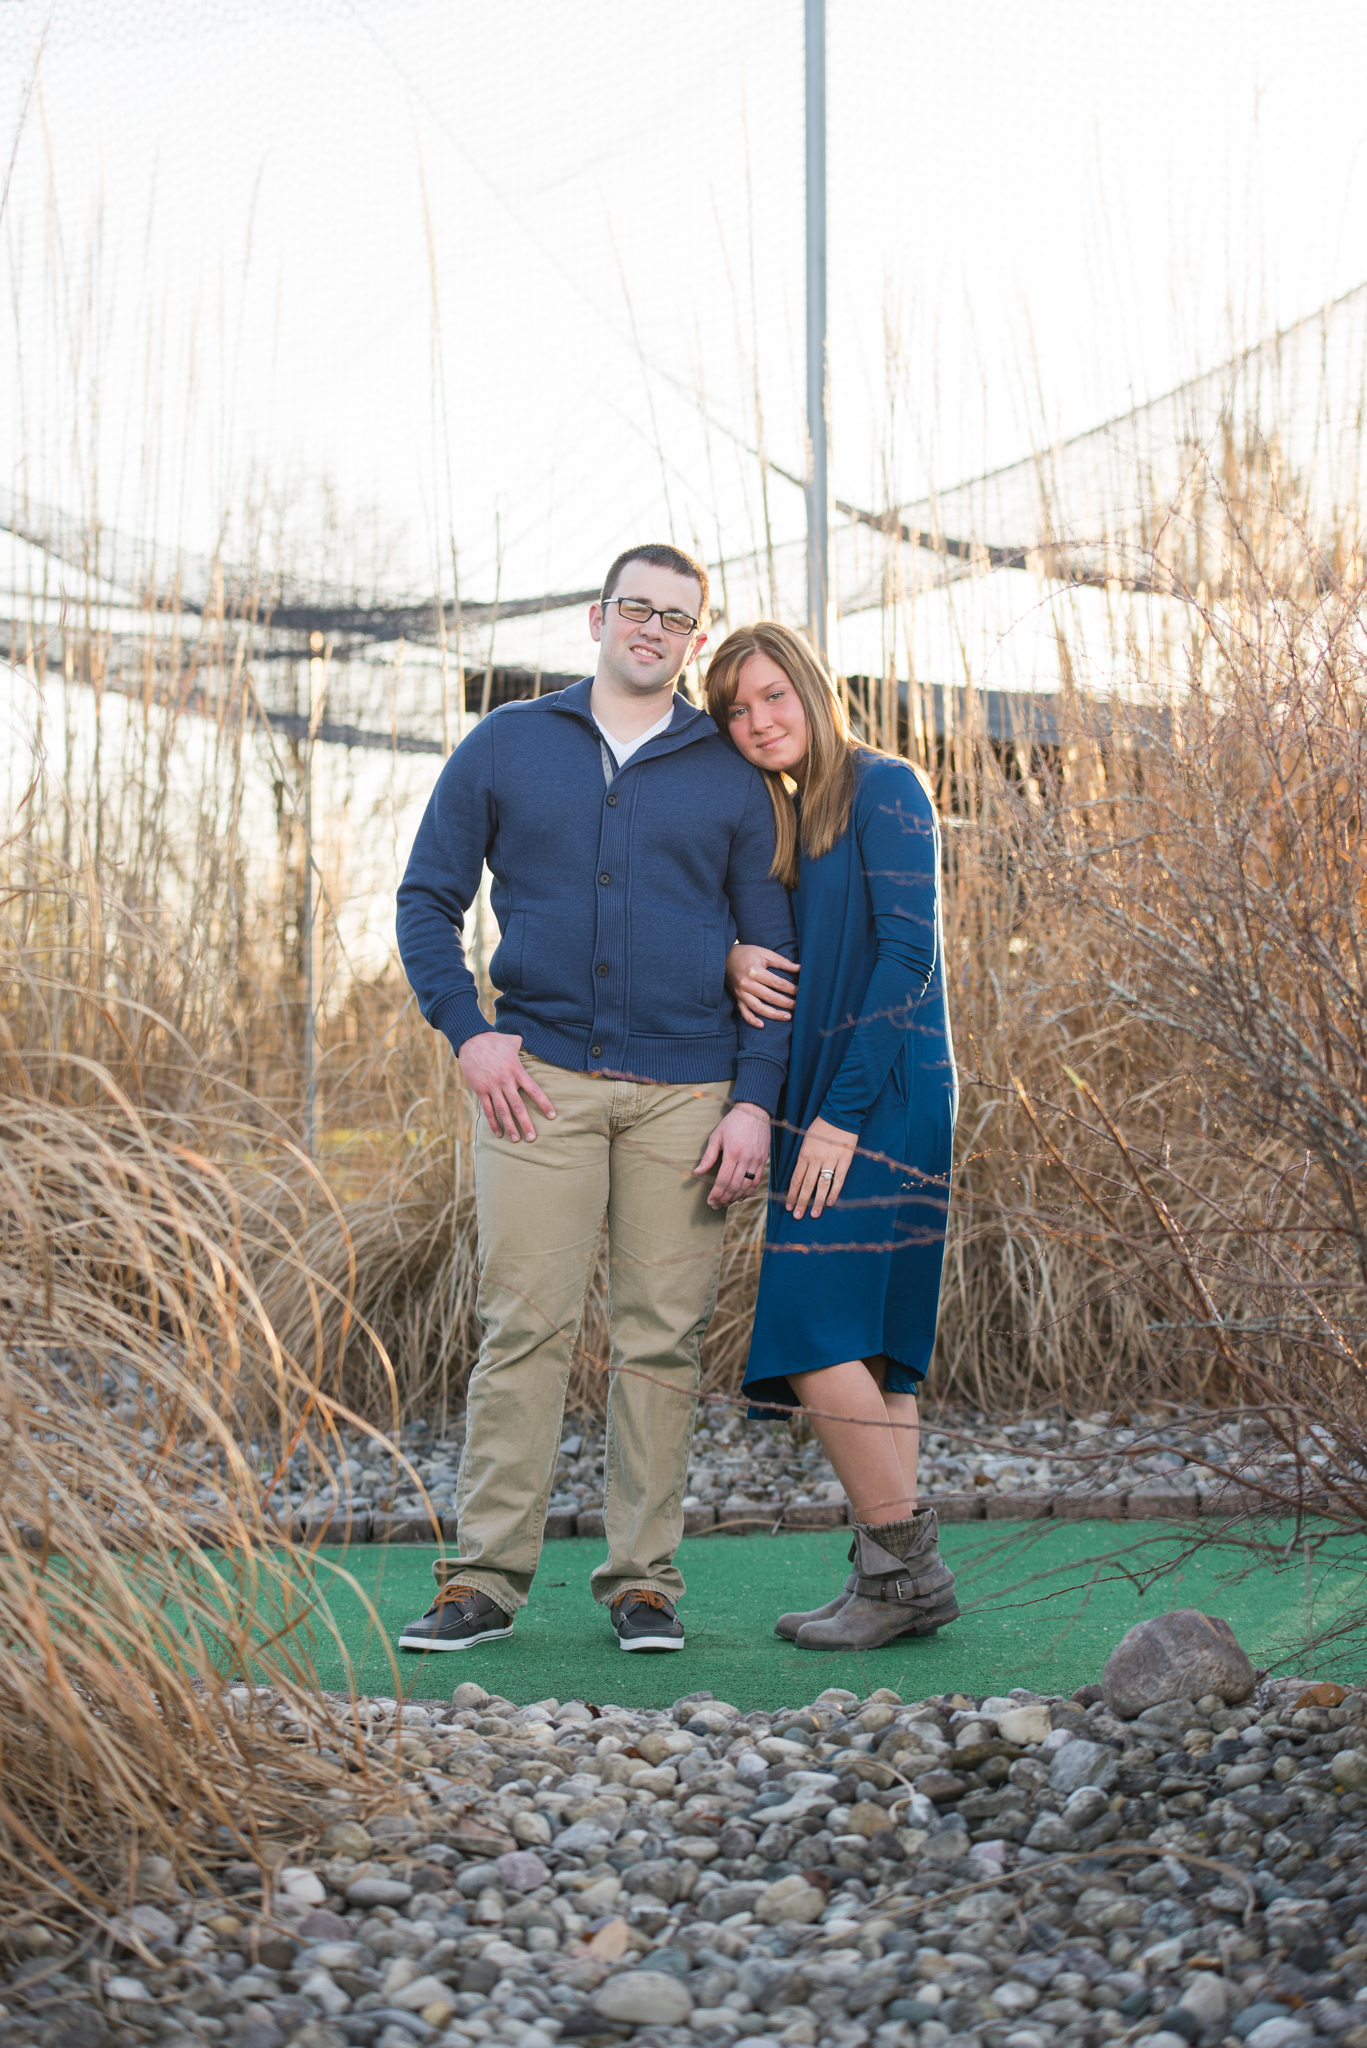 Richmond KY engagement session at batting cages